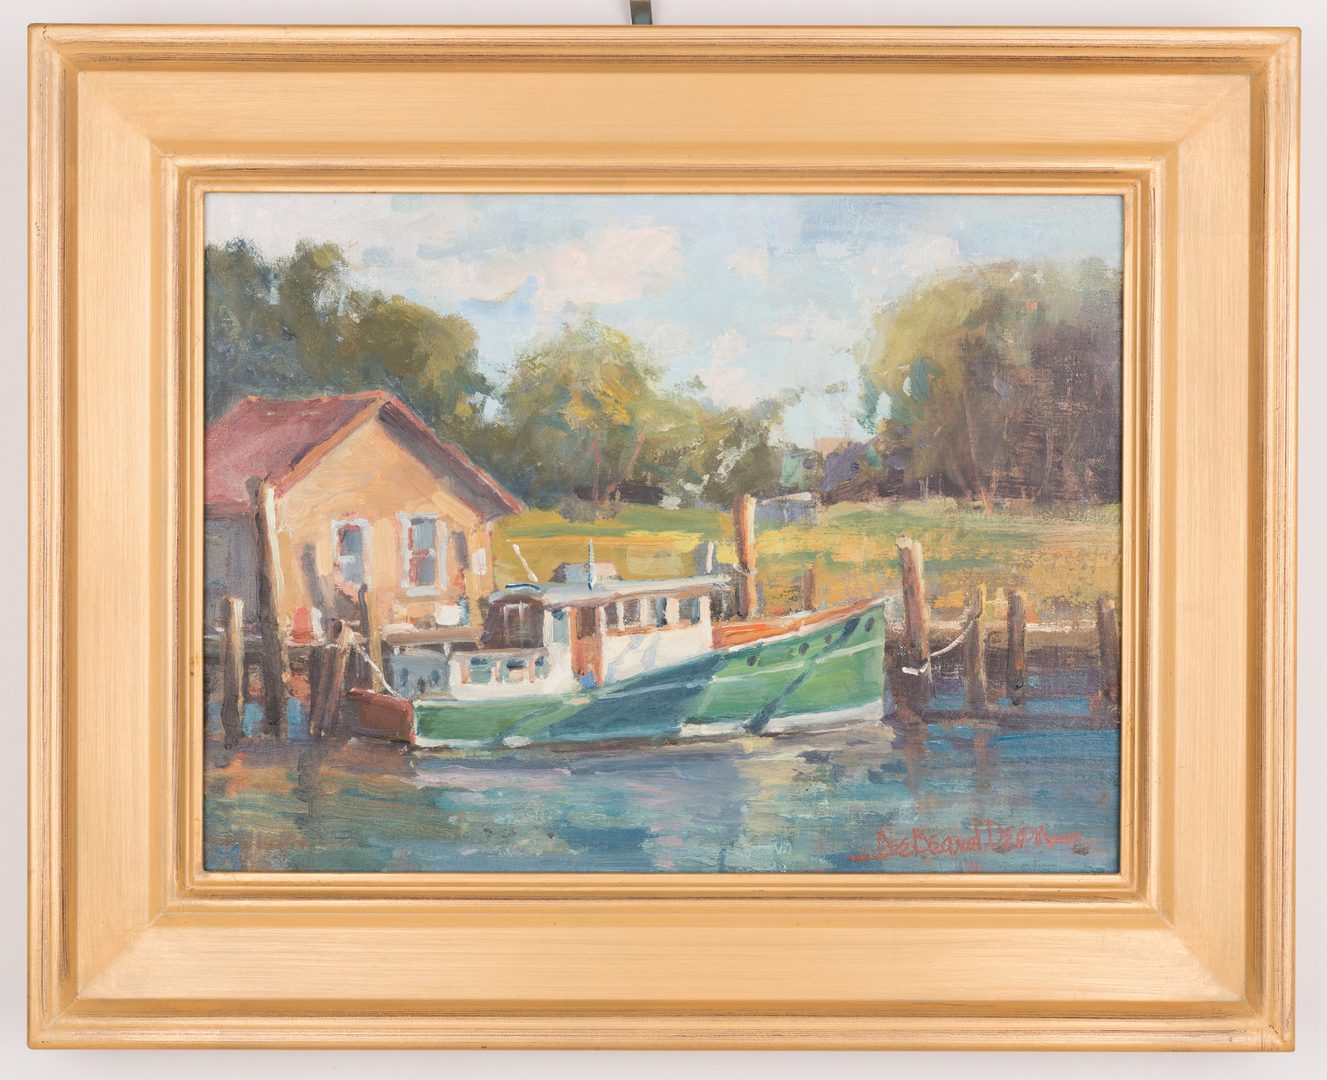 Lot 715: Dee Beard Dean, O.B, Maritime Painting